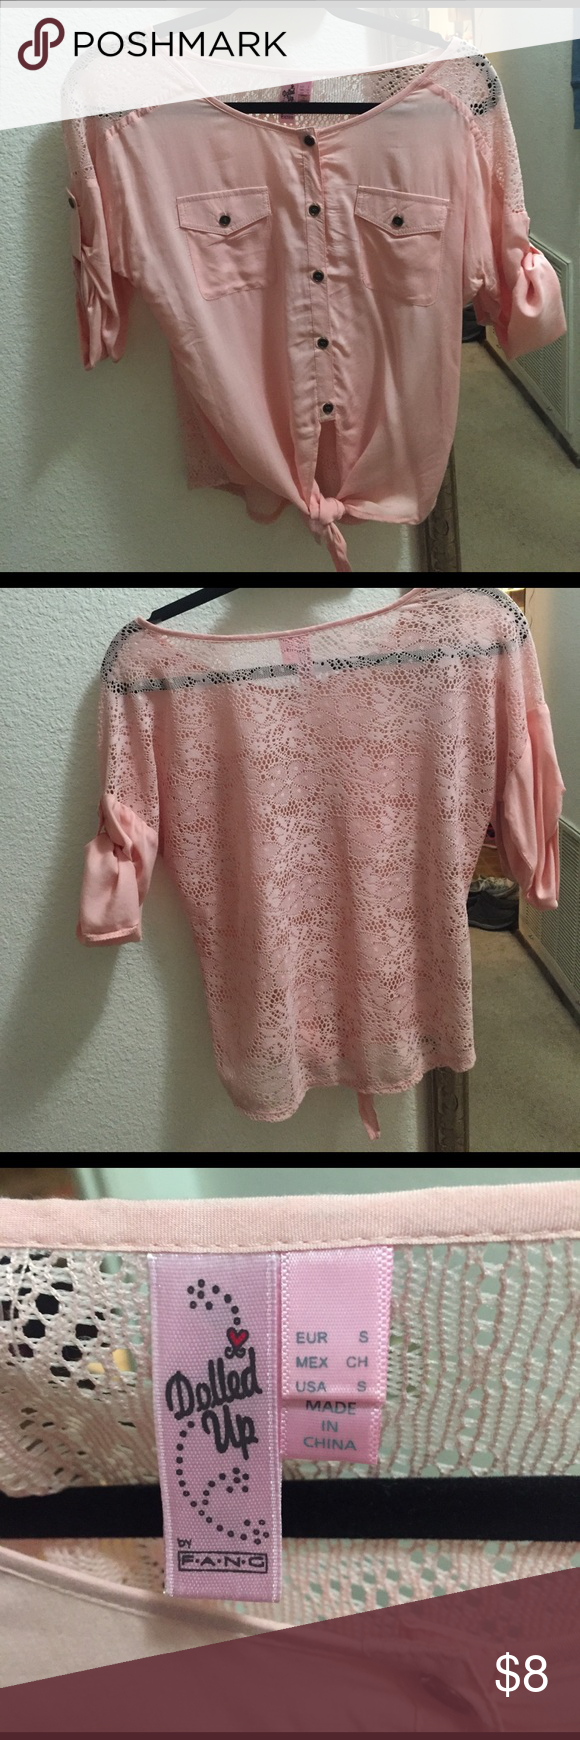 Pink blouse Cute pink blouse worn once! Lace back! So cute on with skinny jeans or leggings Dolled Up Tops Blouses